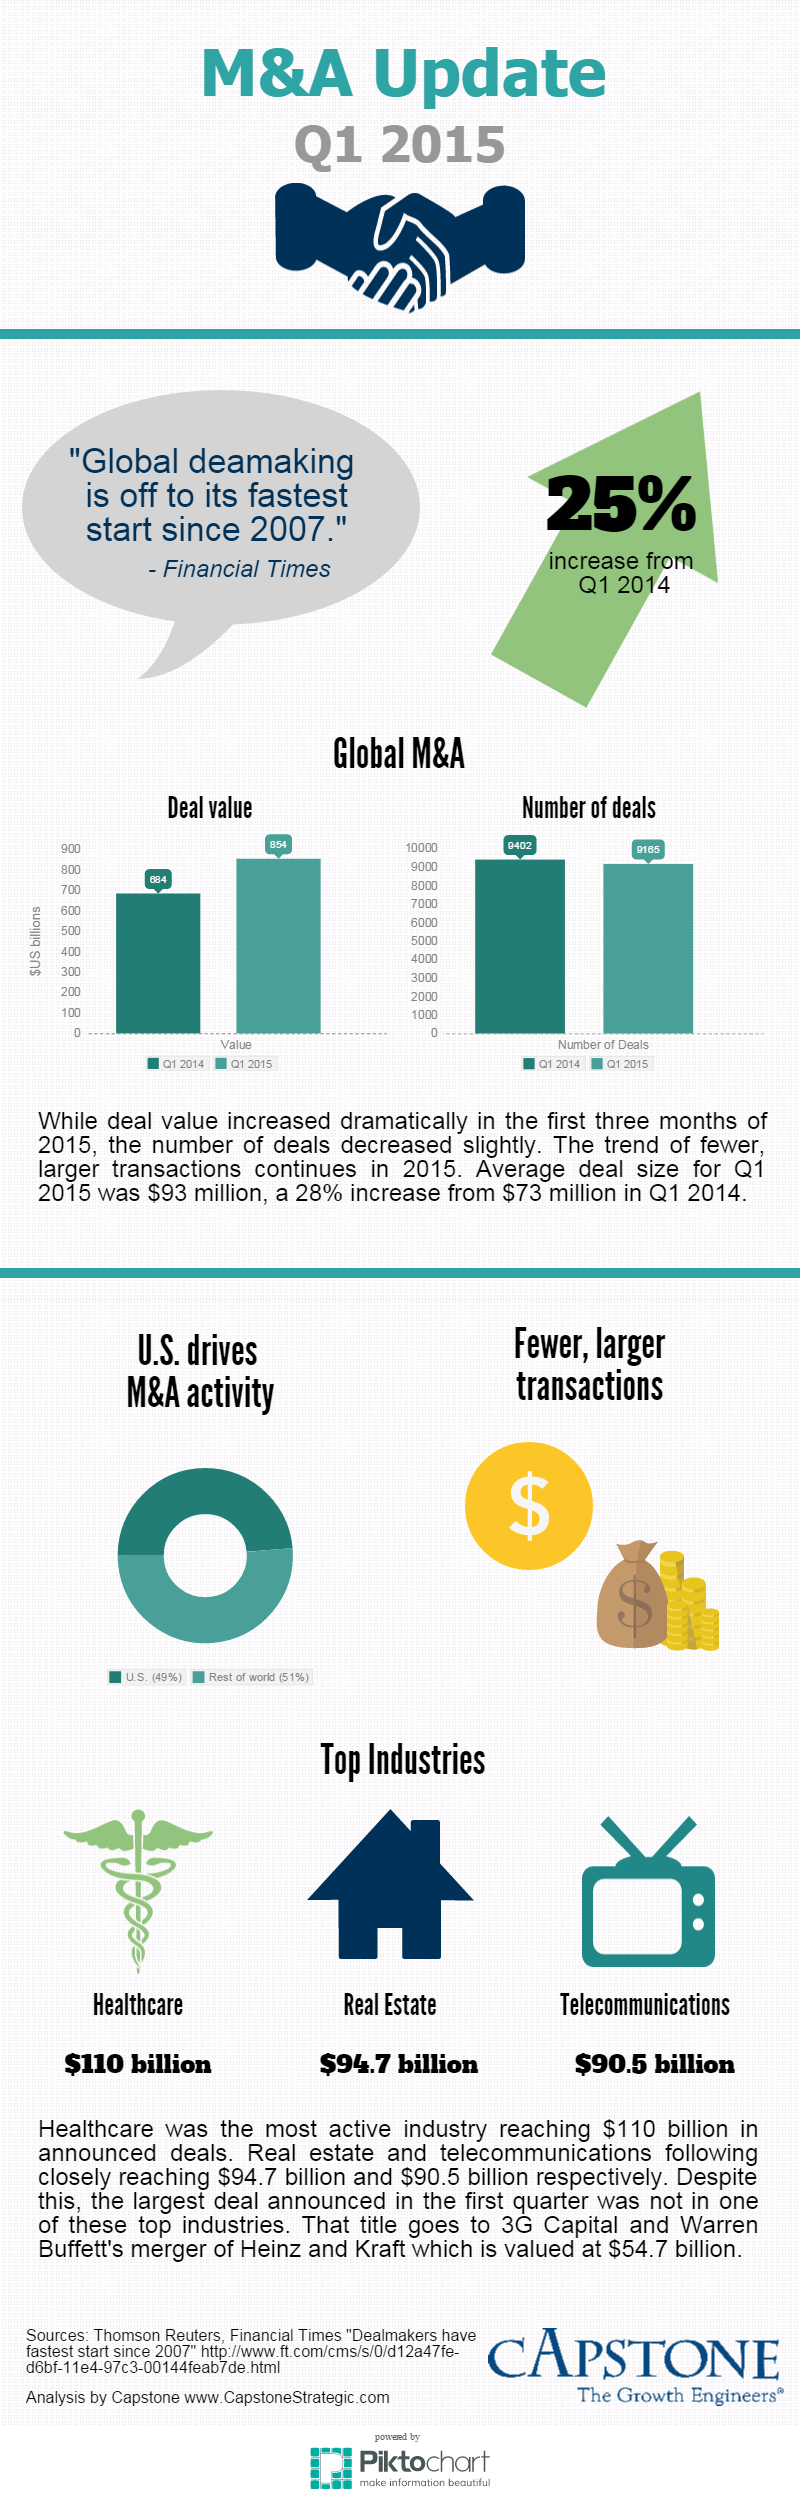 M&A Update Q1 2015 Infographic